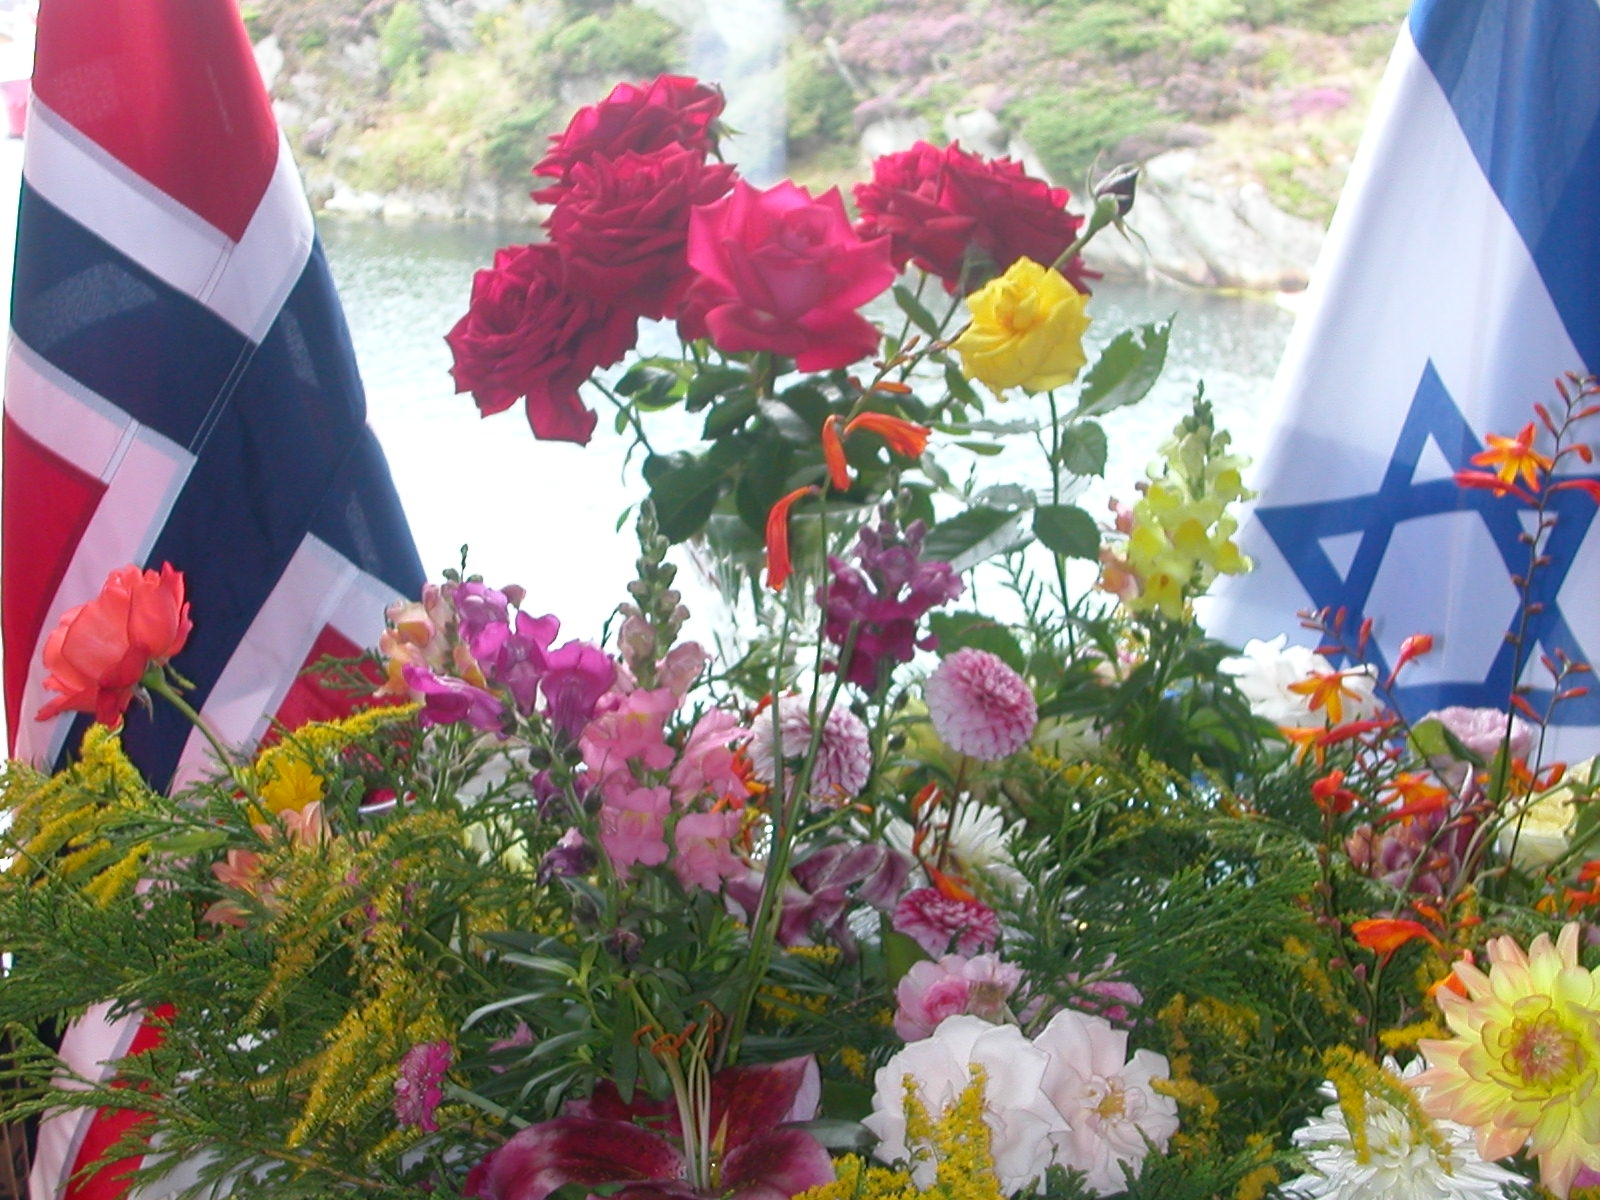 Shalom Israel friendship Norwegians and Jews